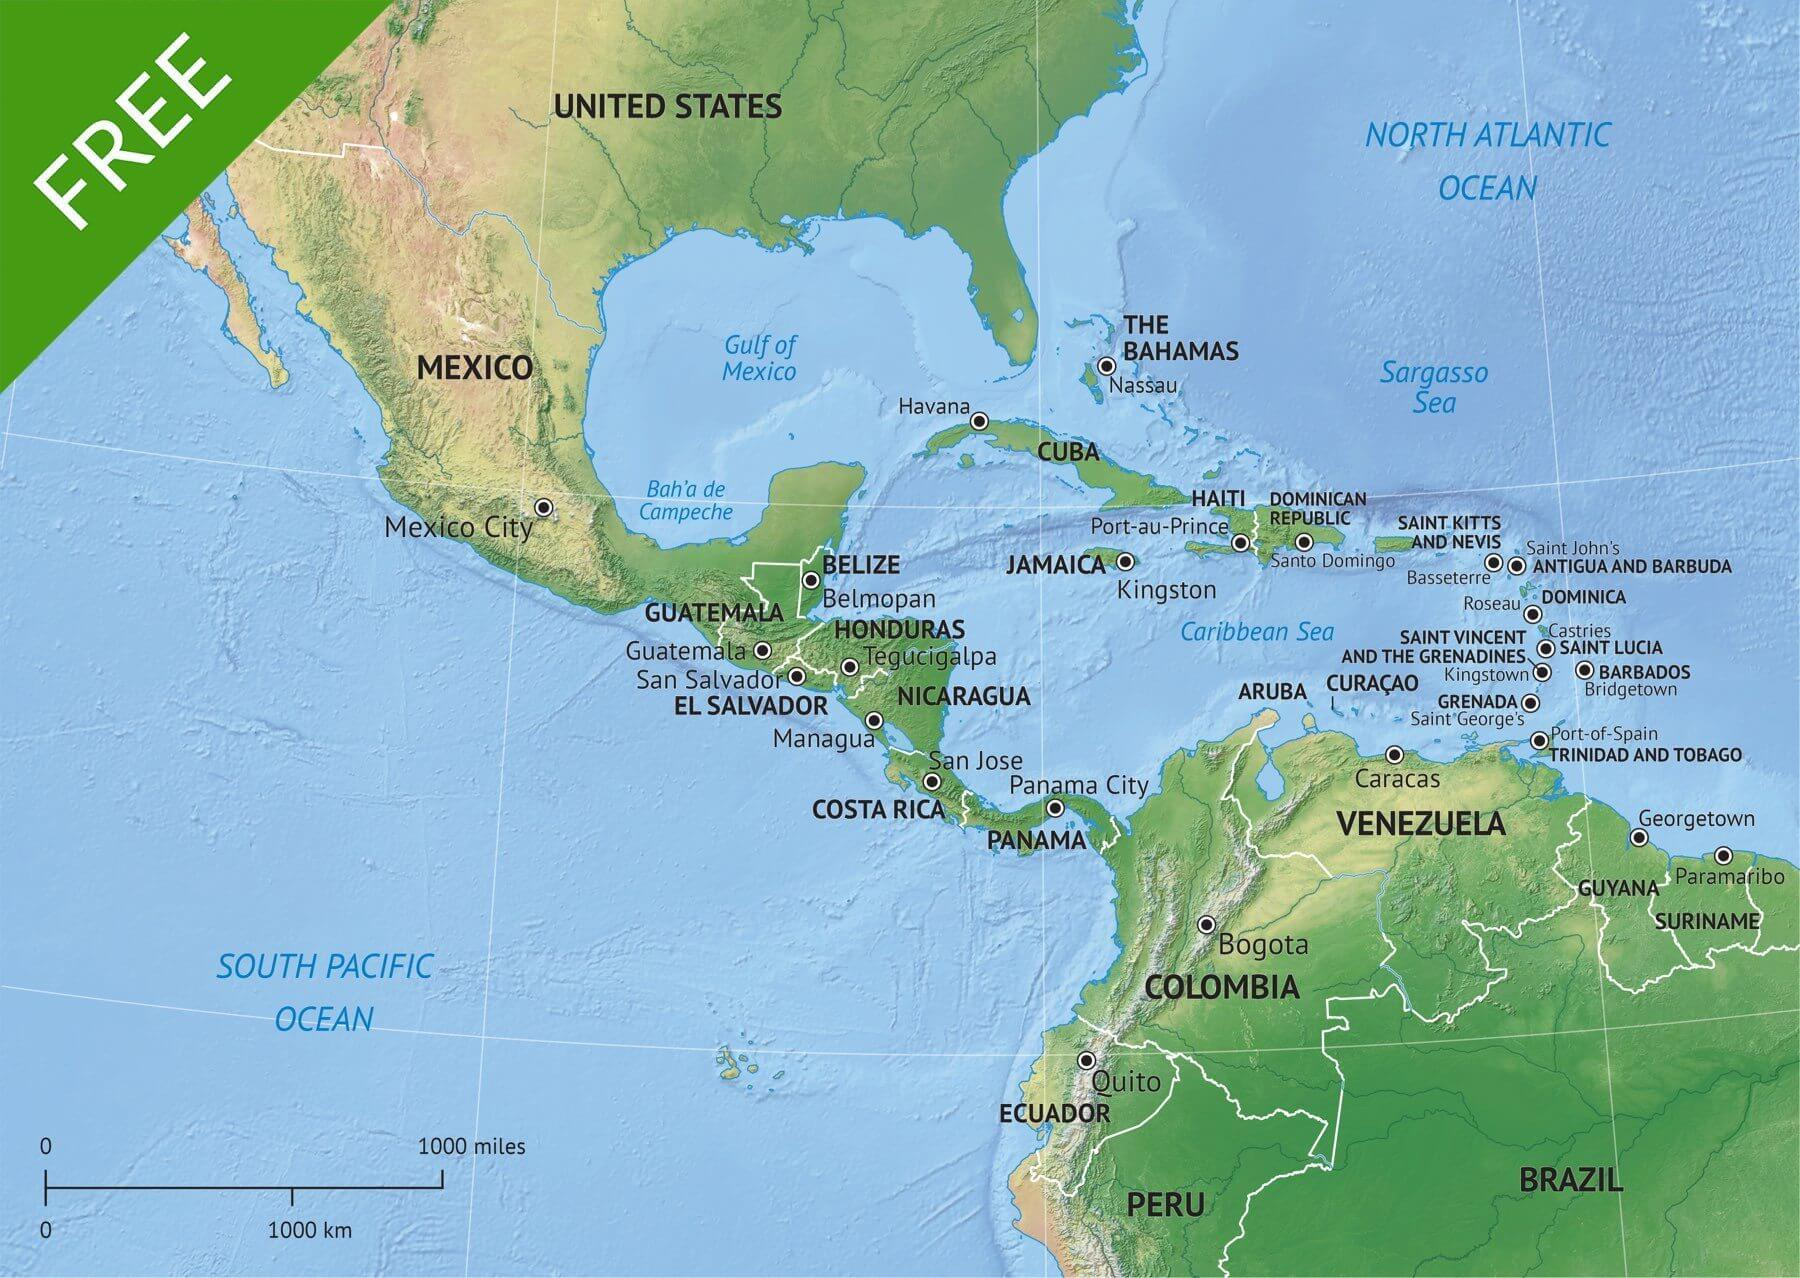 Cenral America Map.Free Vector Map Middle Central America One Stop Map